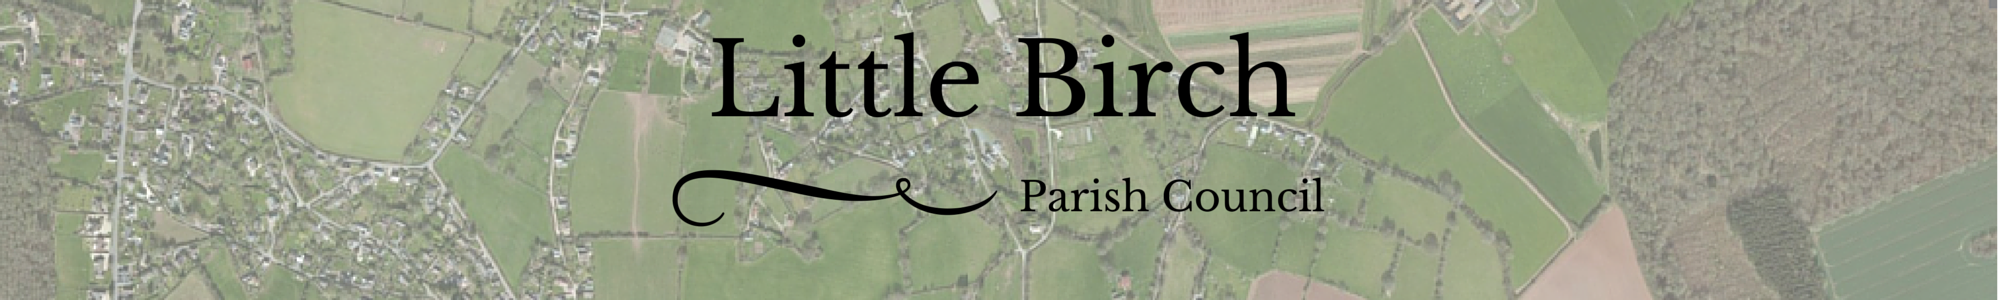 Little Birch Parish Council